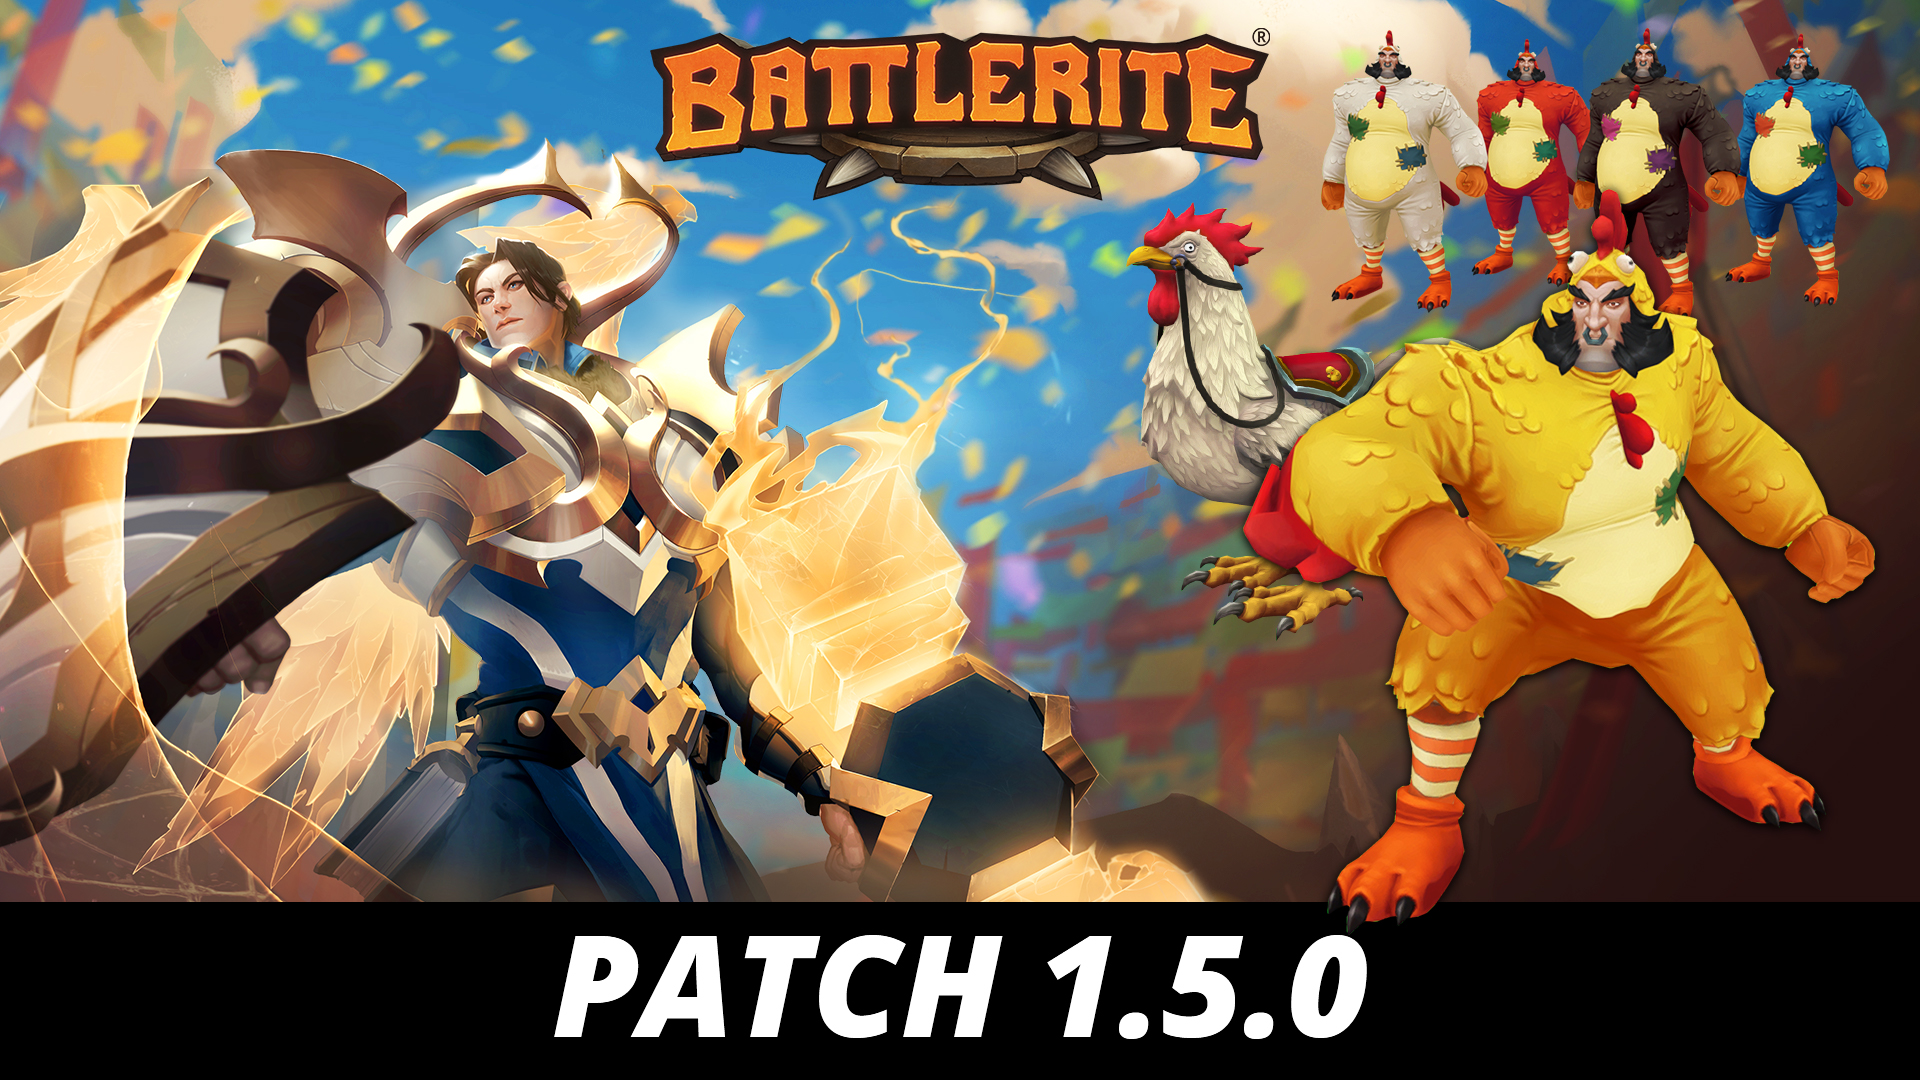 Battlerite Patch 1.5